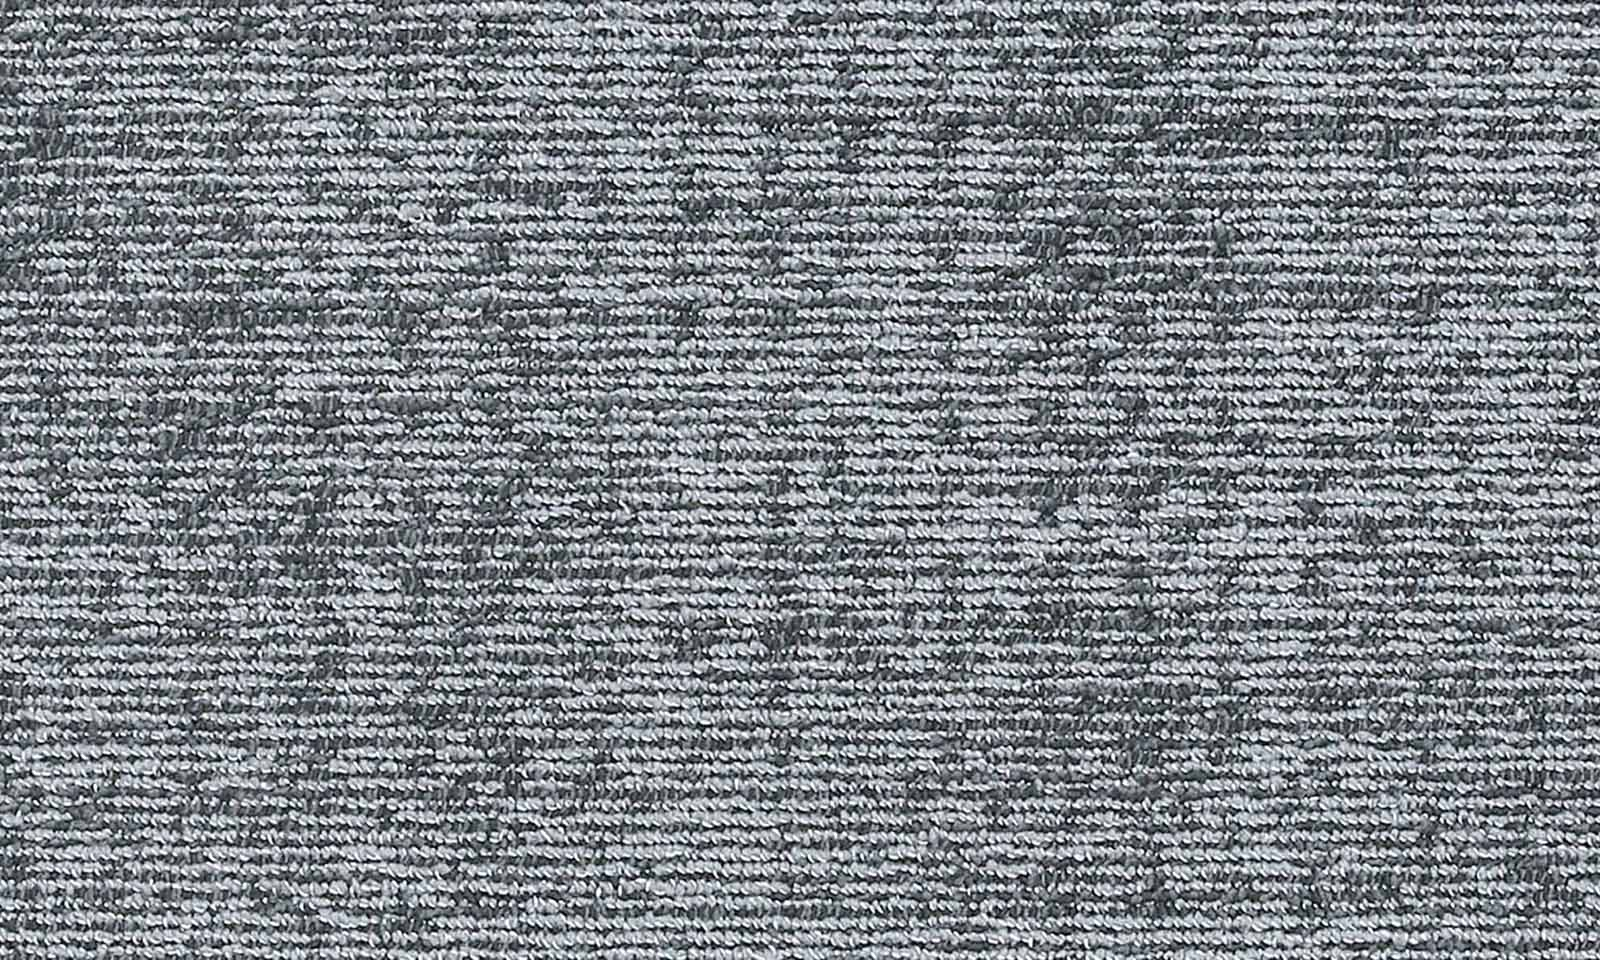 T81608 Collection - T816G Immerse Carpet